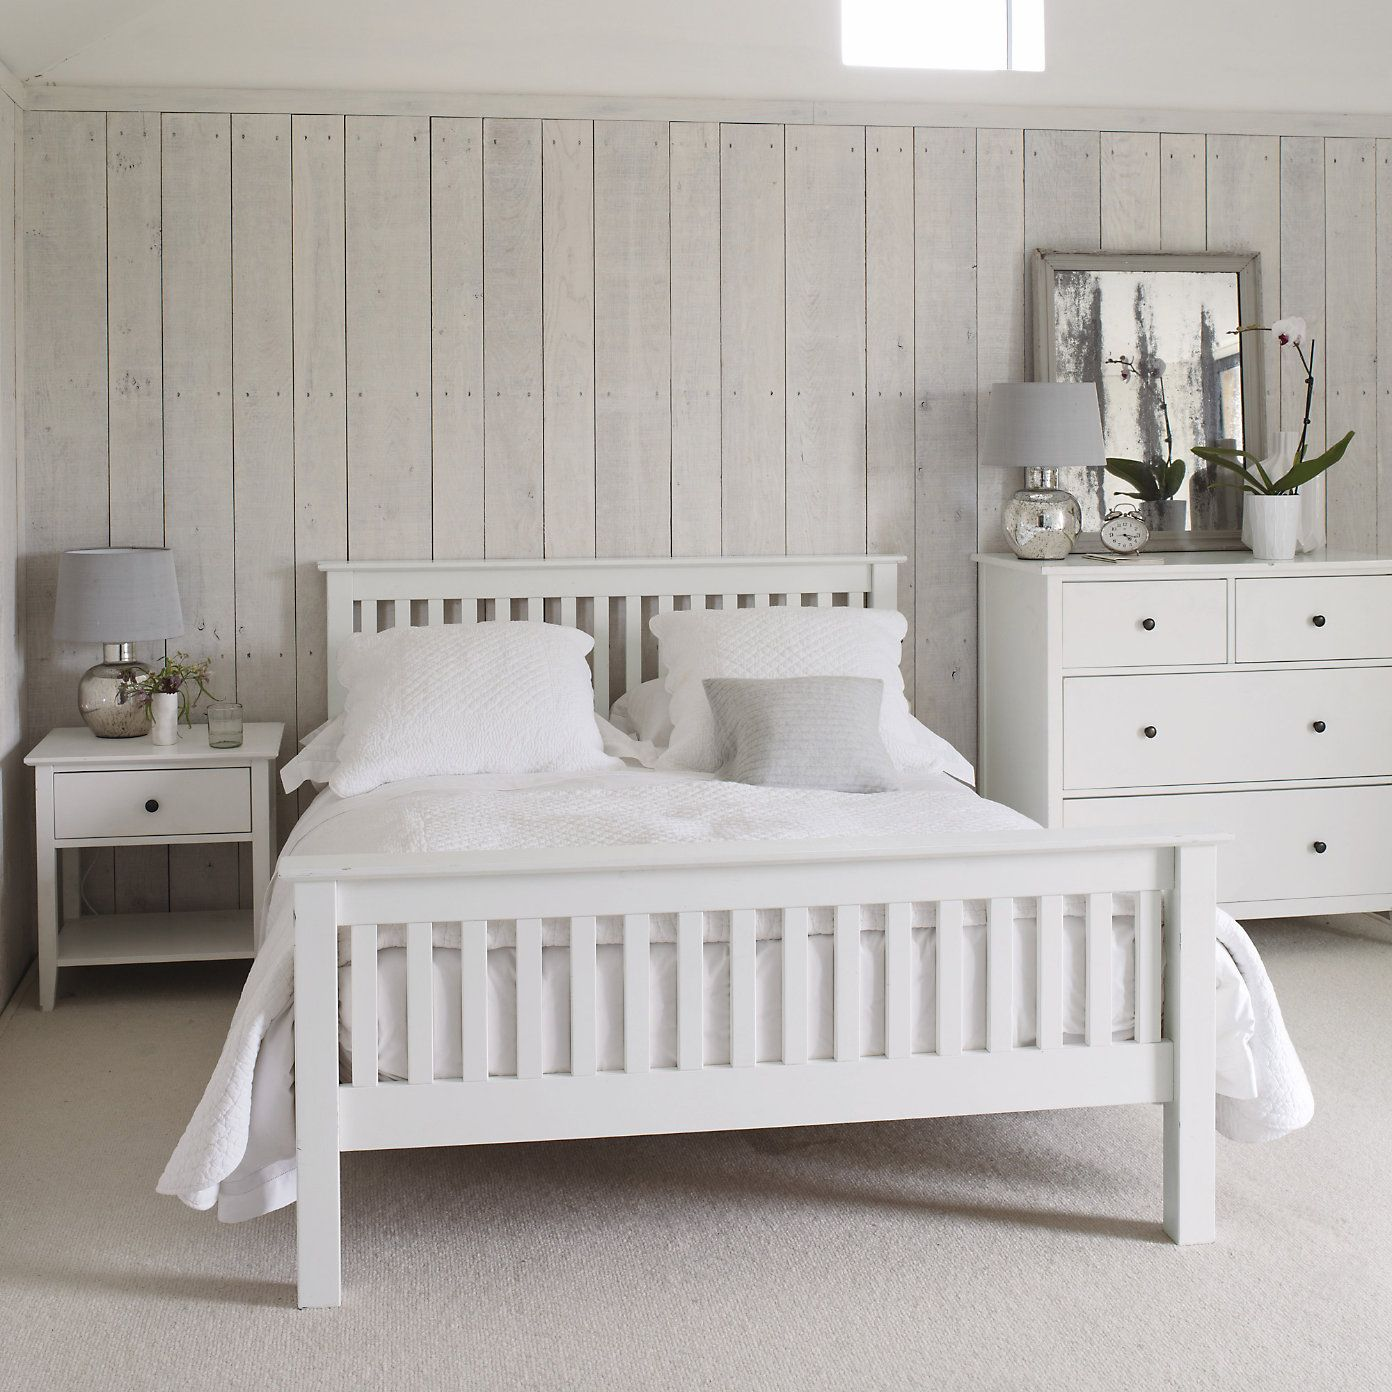 Best 25 White Wooden Bed Ideas On Pinterest Loft Bed